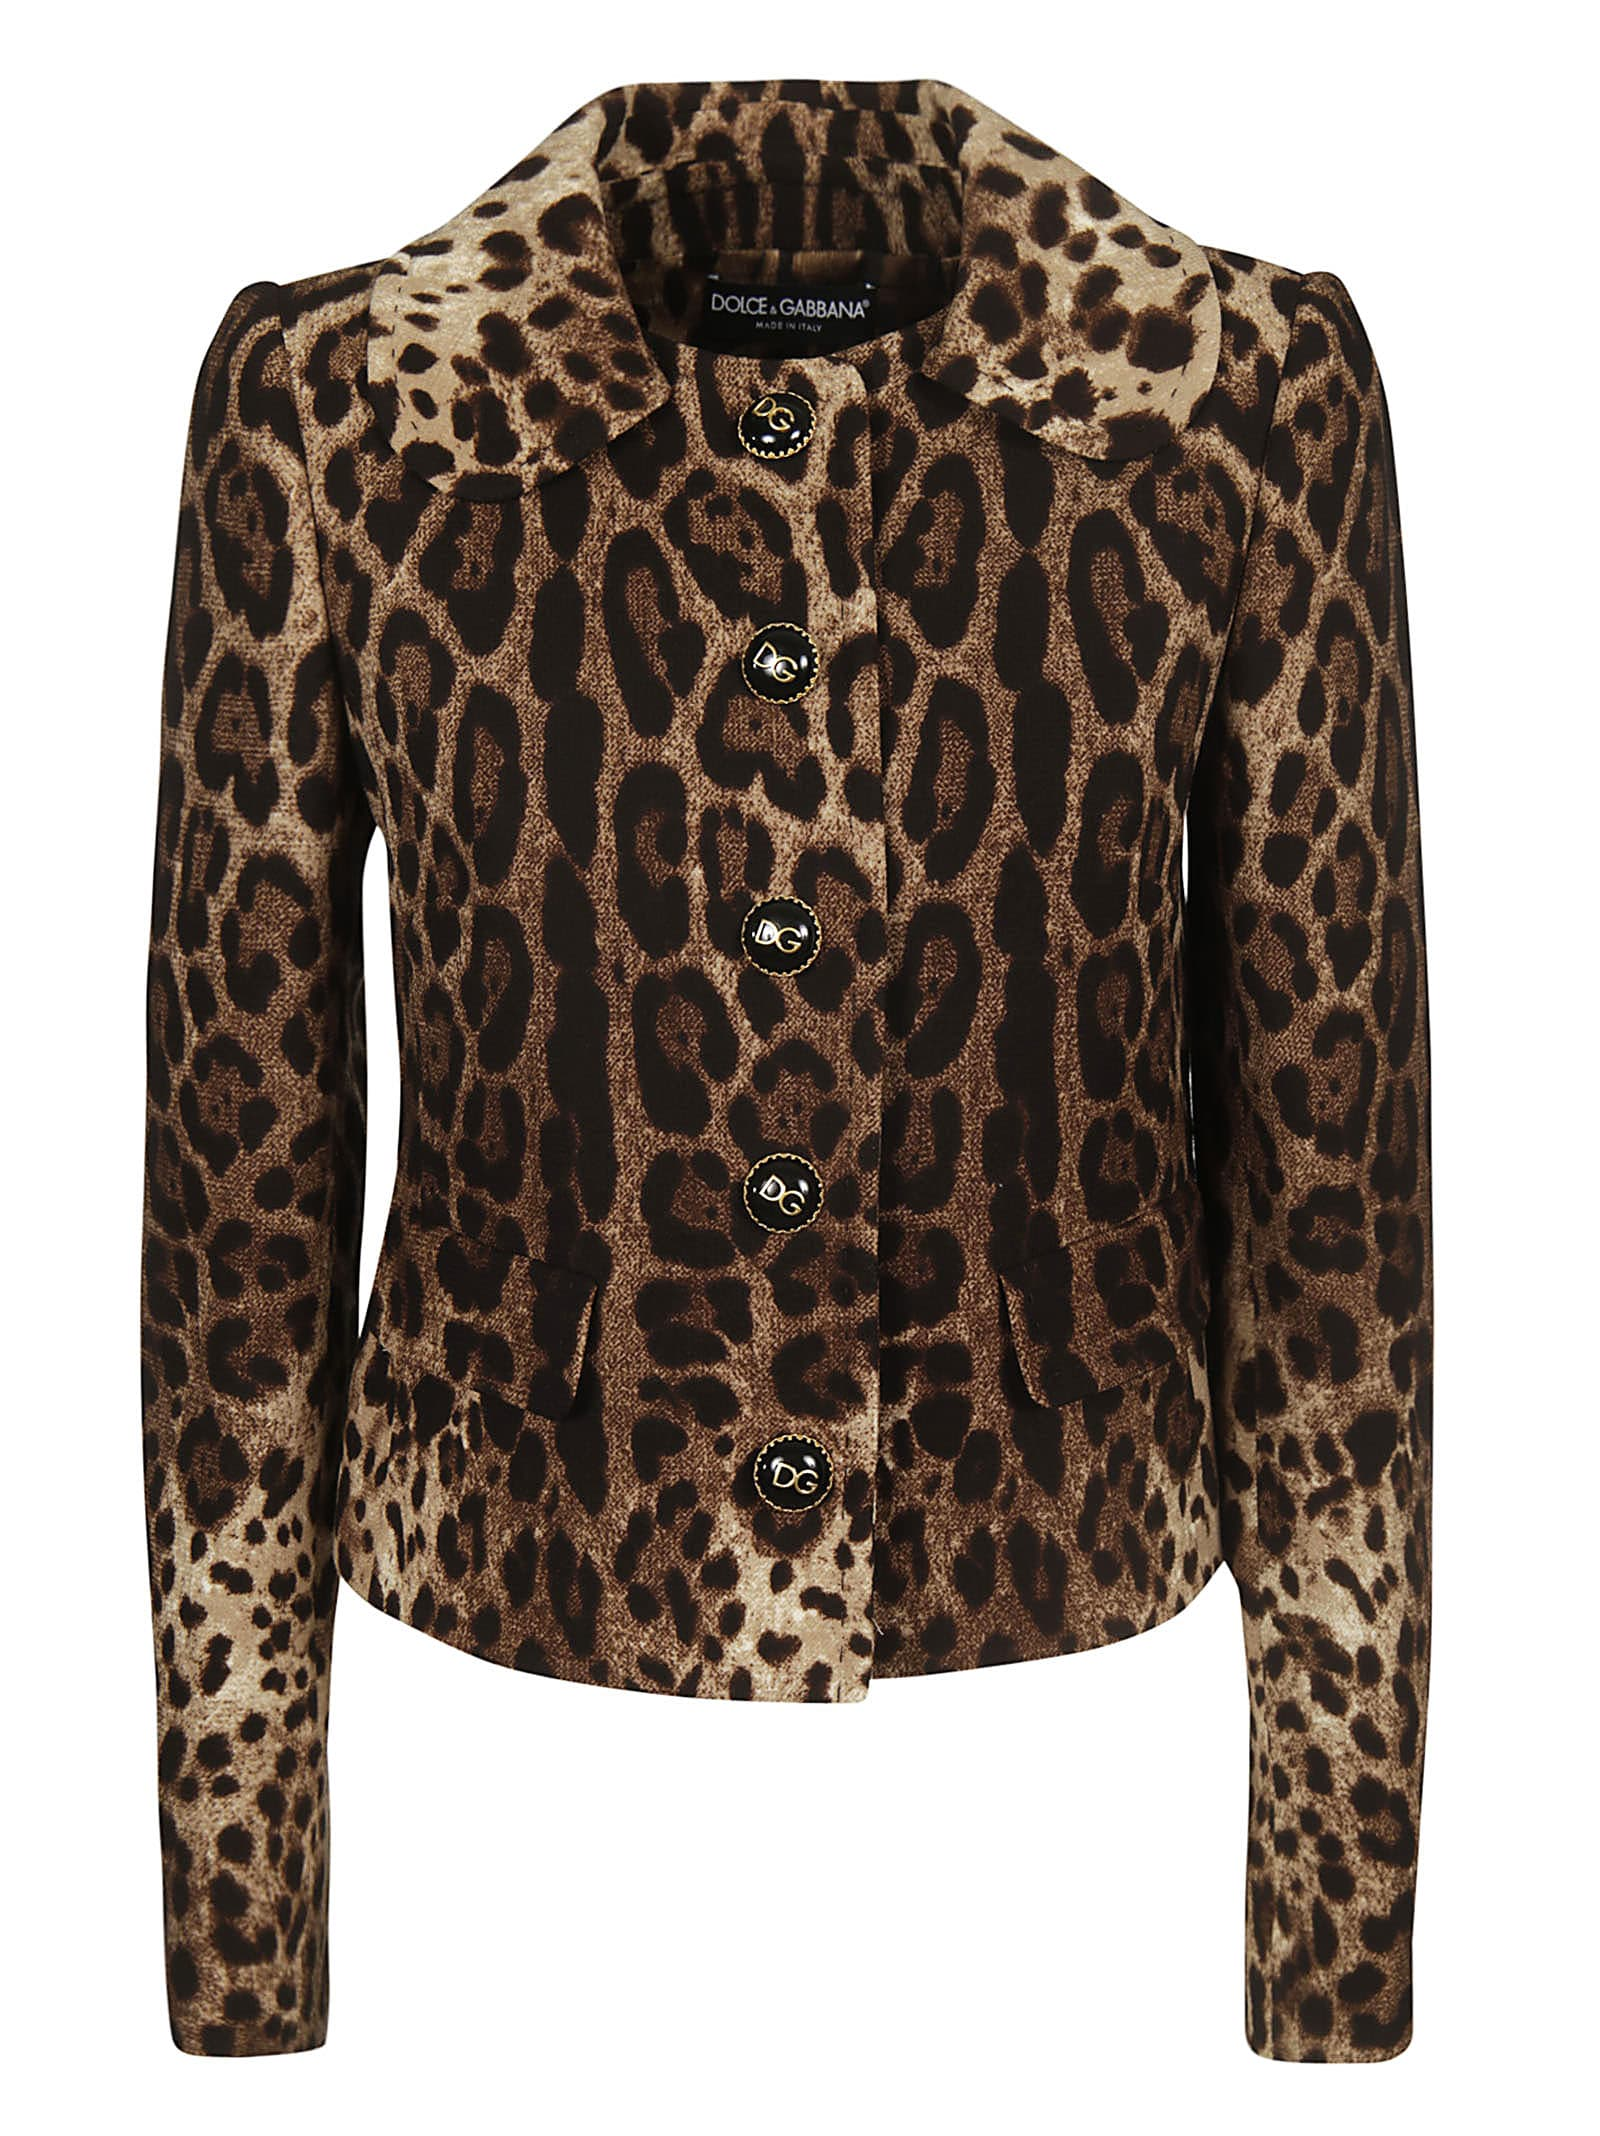 Dolce & Gabbana Animal Print Jacket